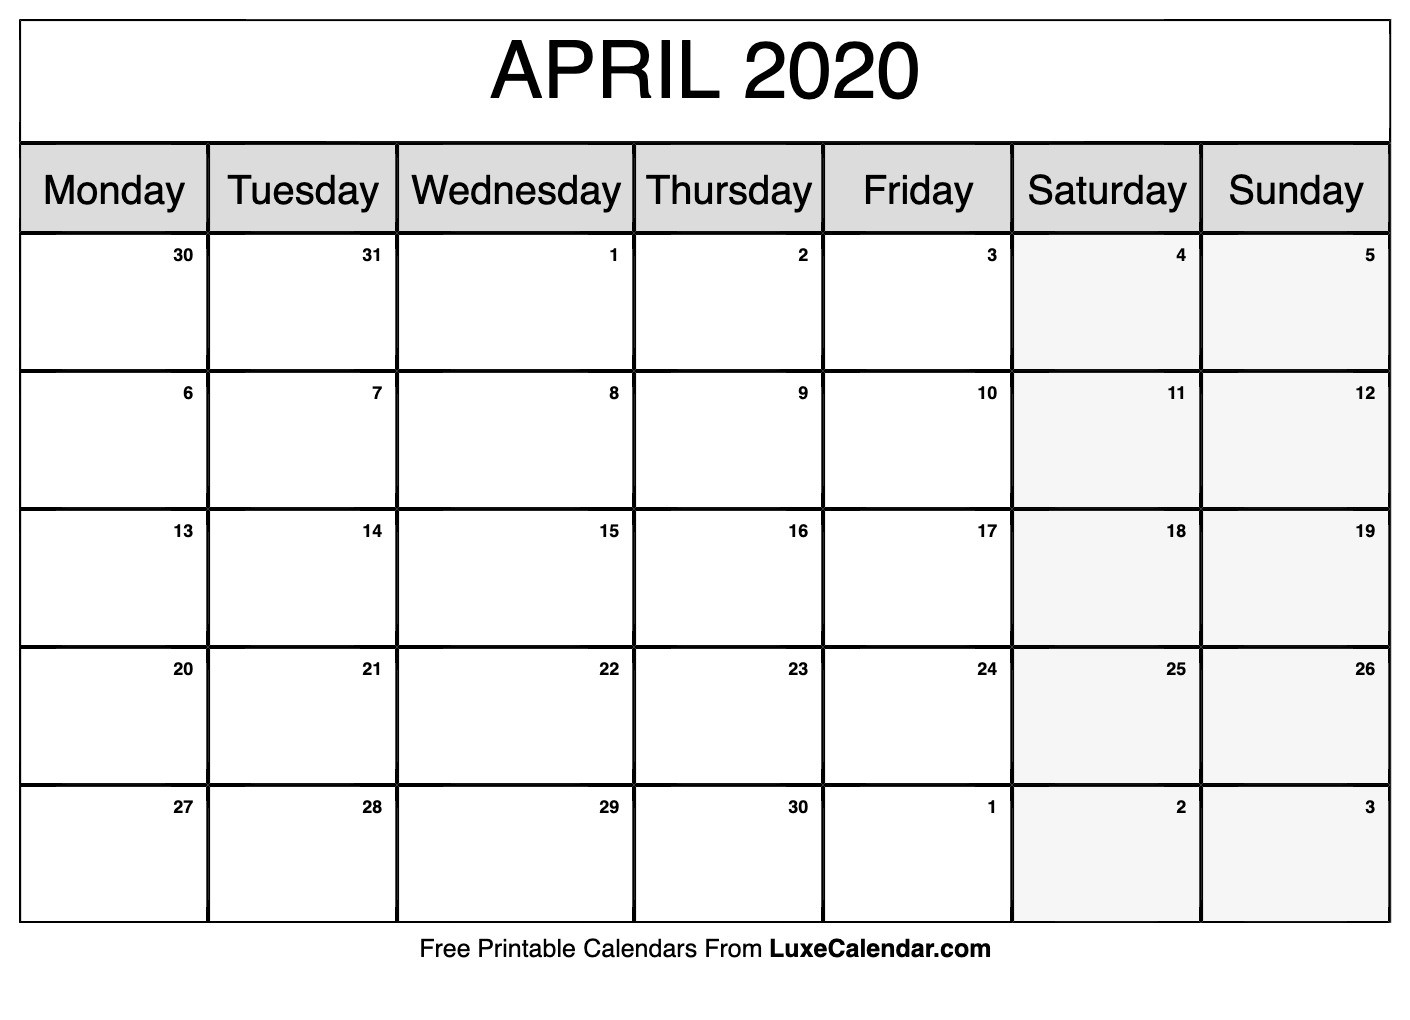 Blank April 2020 Calendar Printable - Luxe Calendar-Month Template 2020 Printable Free Starting On Monday